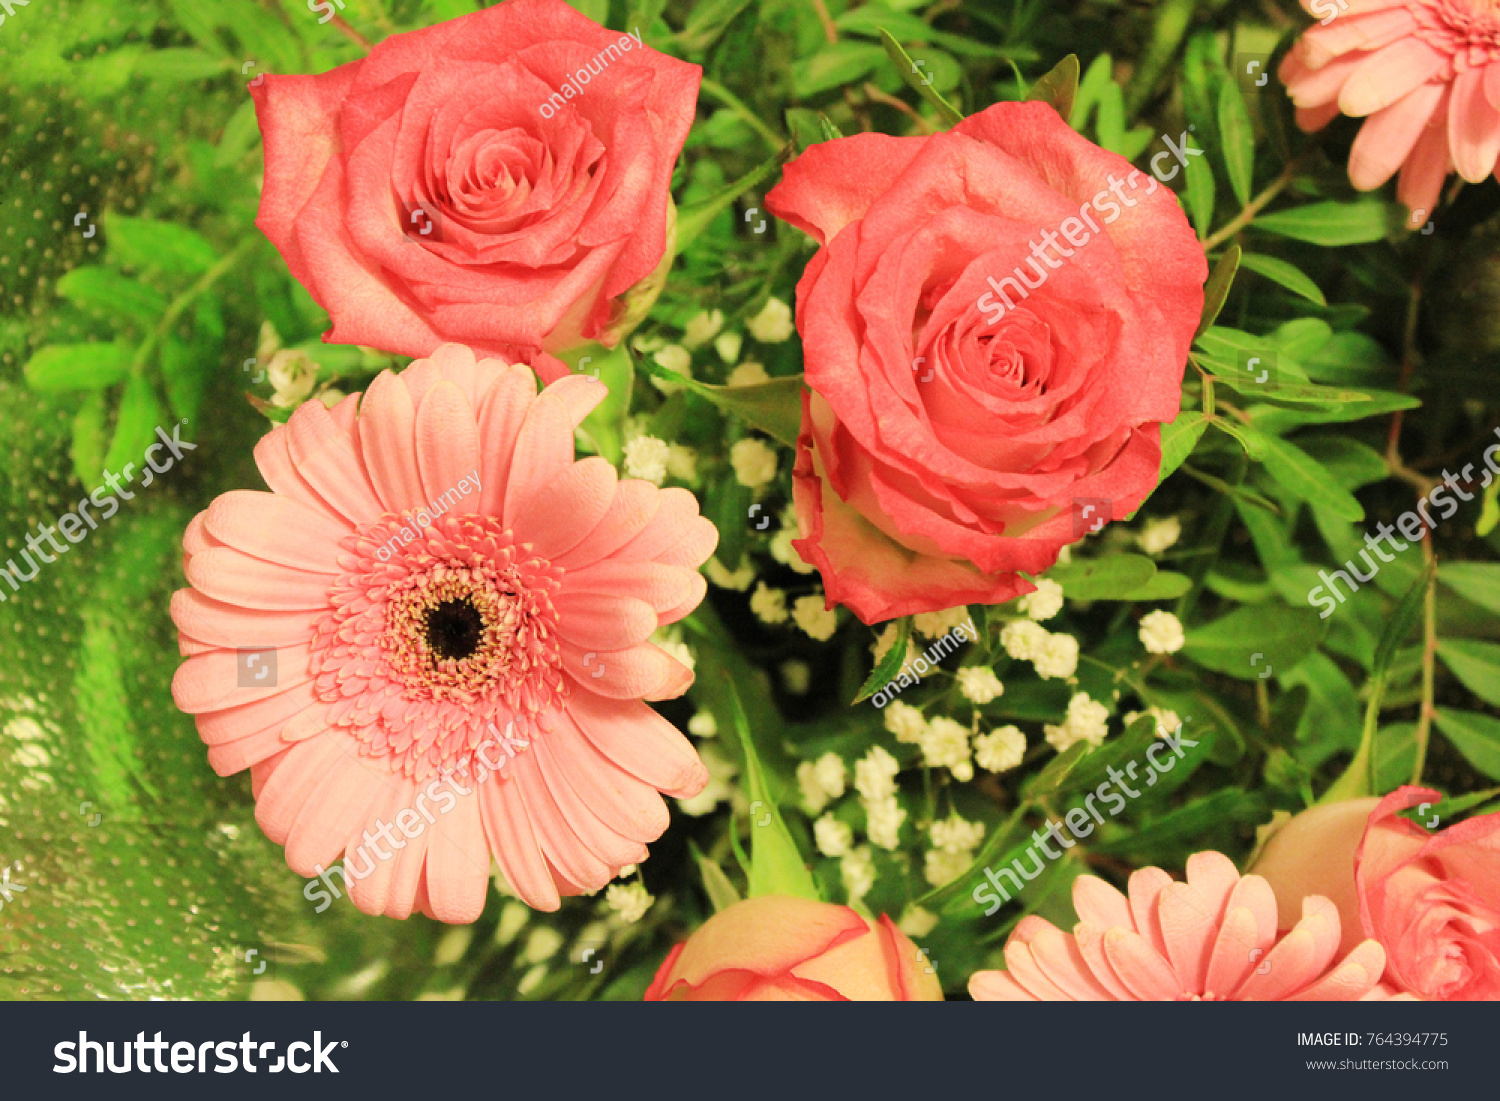 Bouquet gerbera daisy flowers roses white stock photo edit now bouquet of gerbera daisy flowers and roses of white red and pink color assorted mix izmirmasajfo